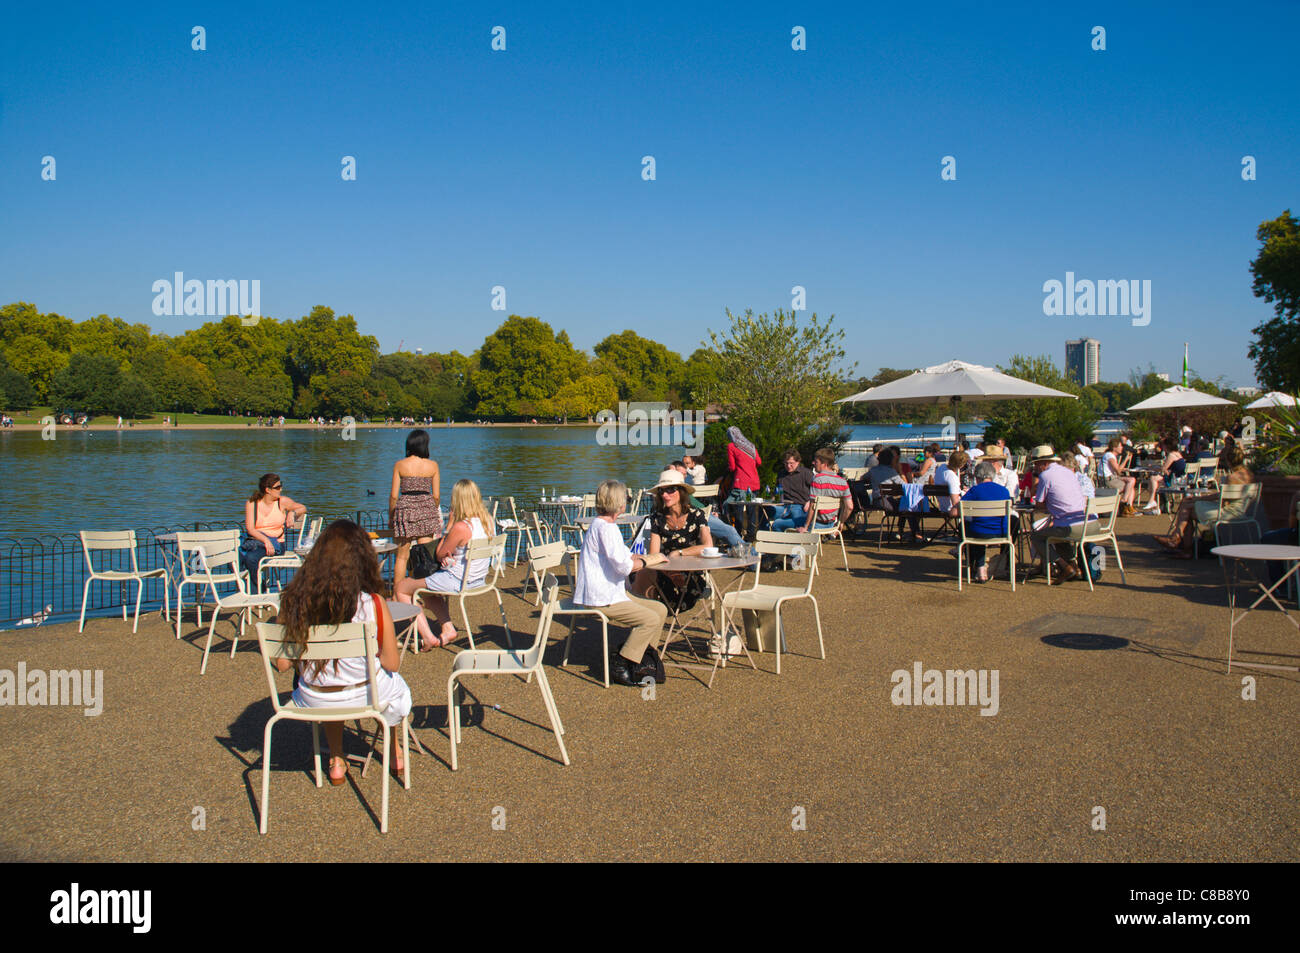 The Lido cafe bar at the Serpentine lake Hyde Park central London England UK Europe - Stock Image